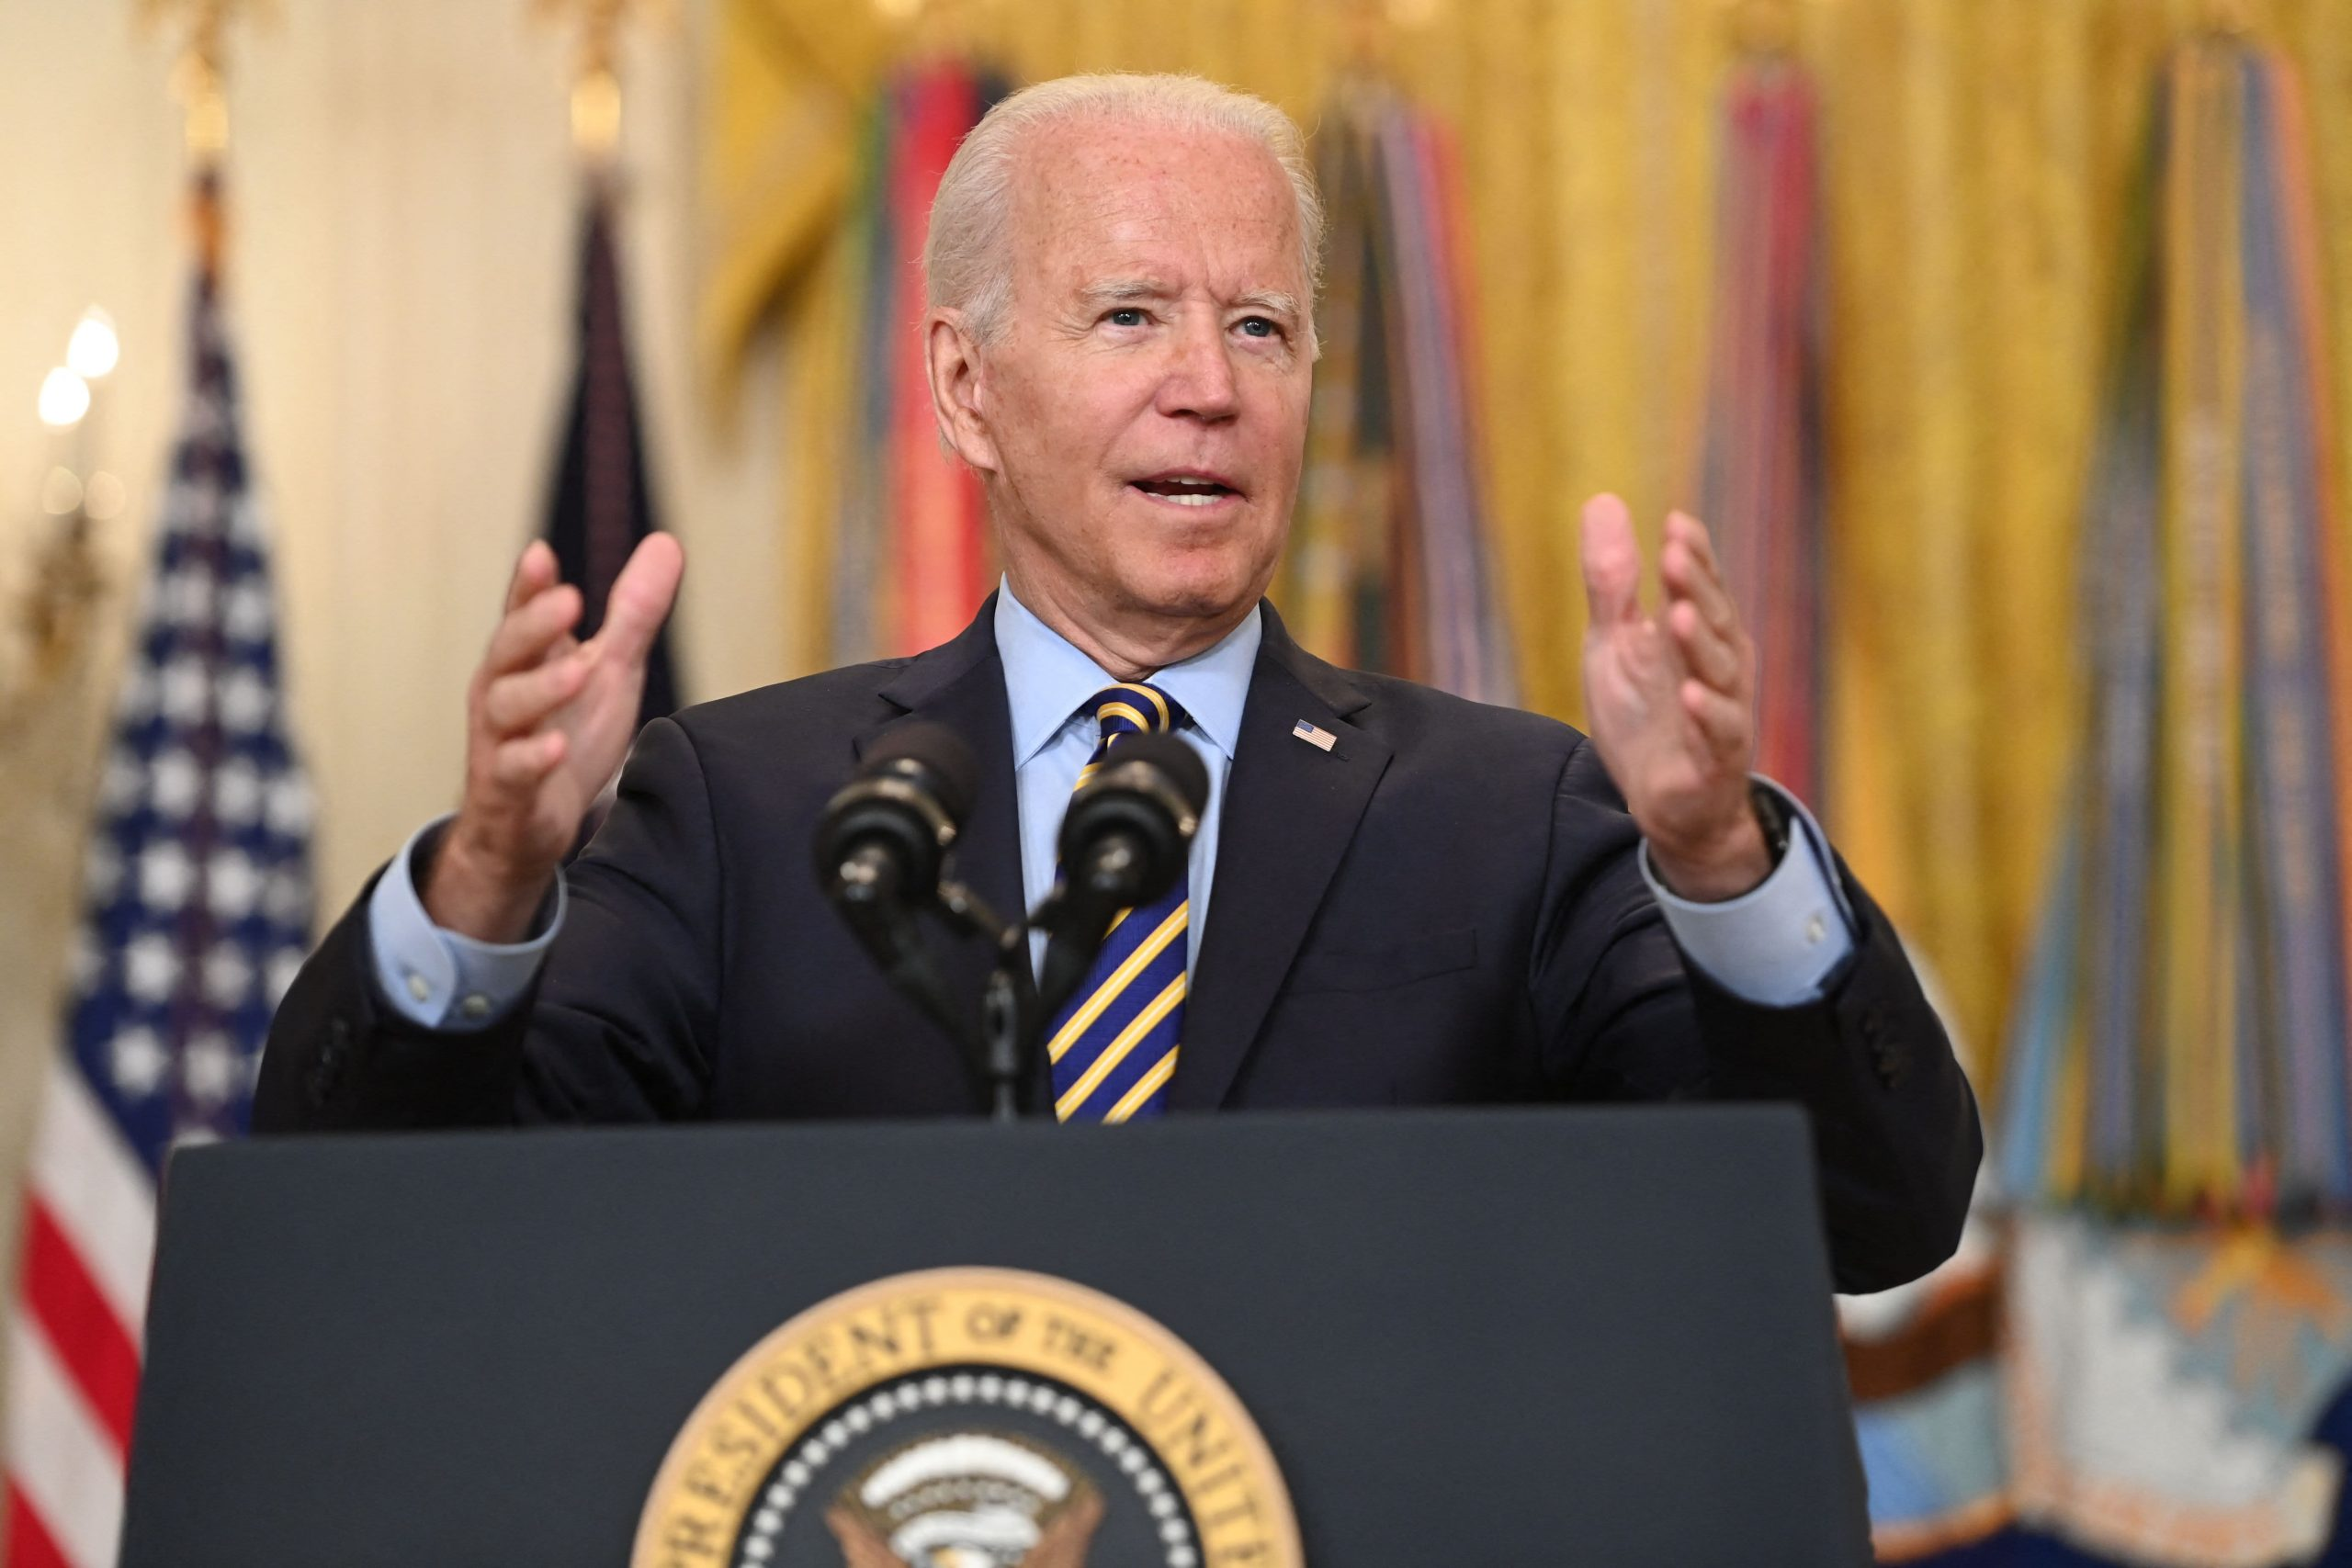 Biden to sign order to crack down on Big Tech, boost competition 'across the board'